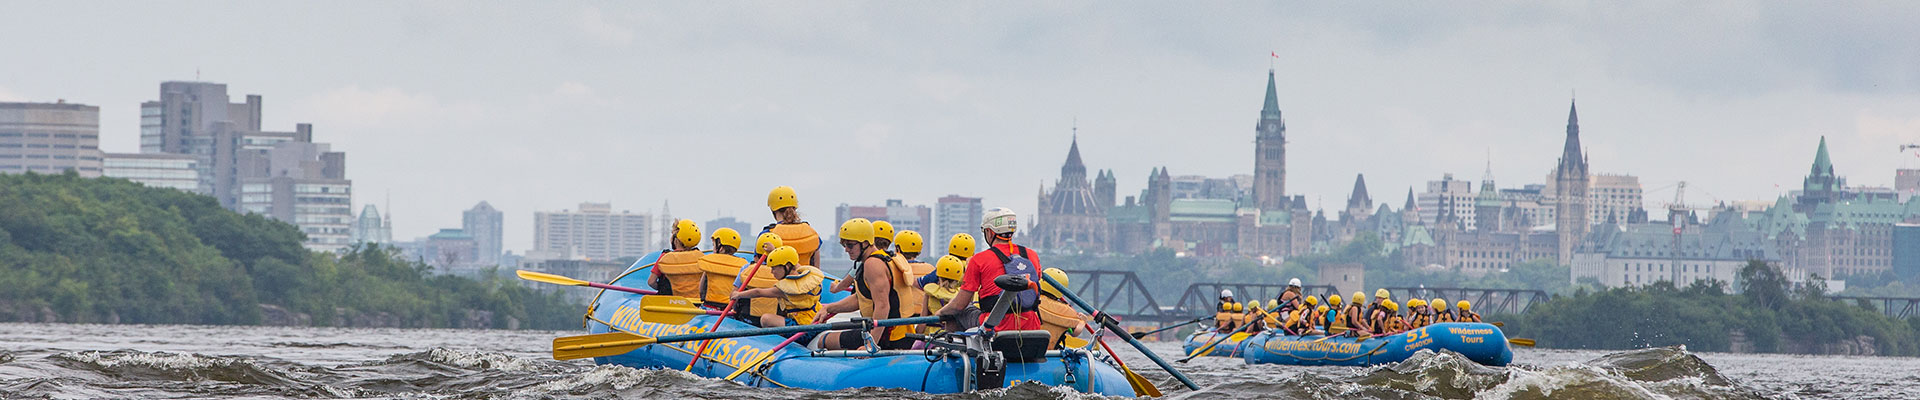 Rafting with parliament buildings in Ottawa